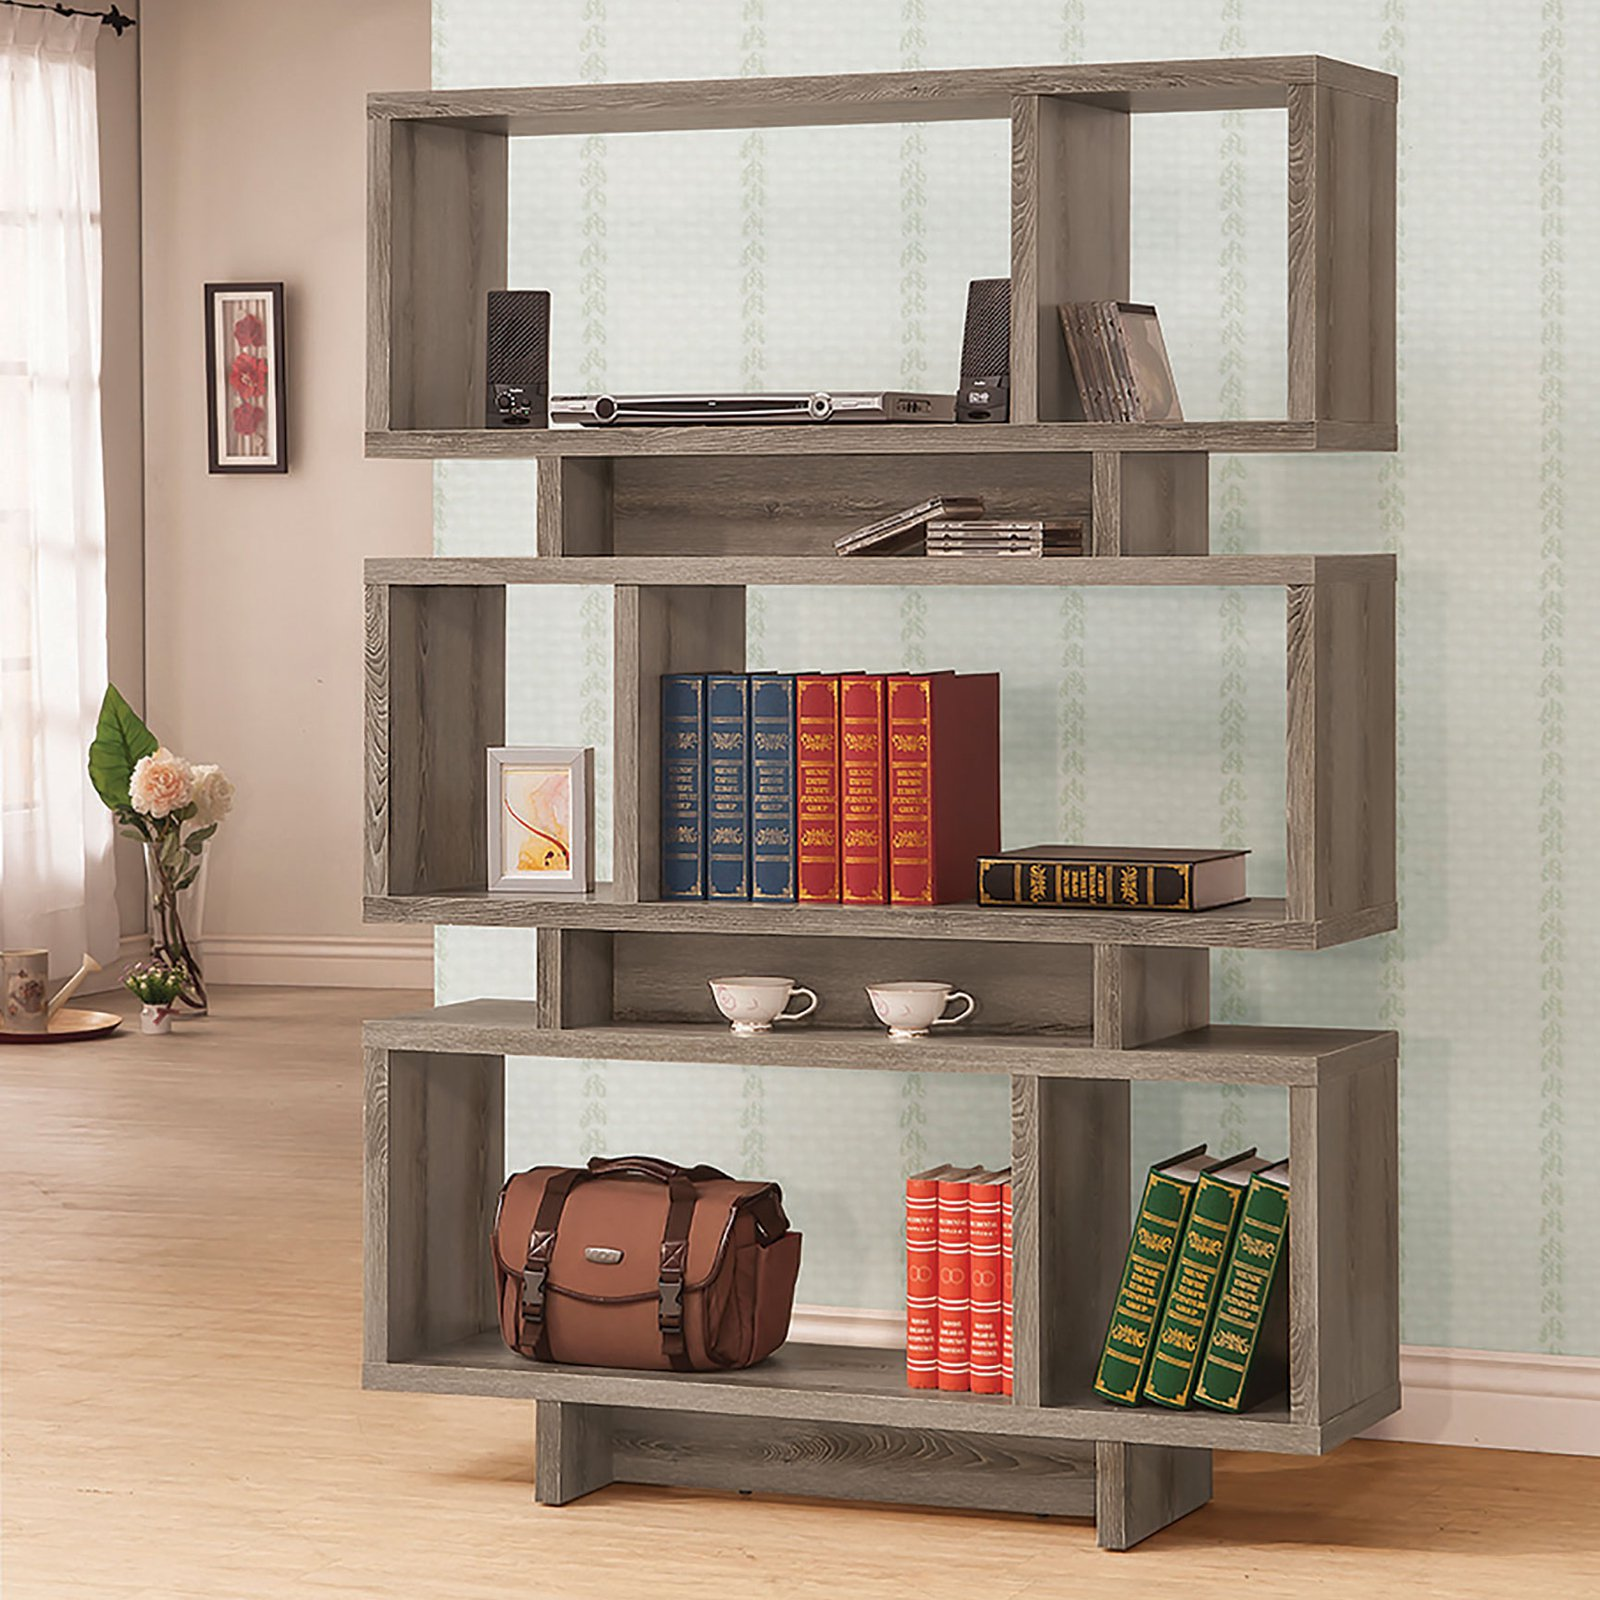 Backless Bookshelves Weathered Grey Backless Bookcase - Walmart.com